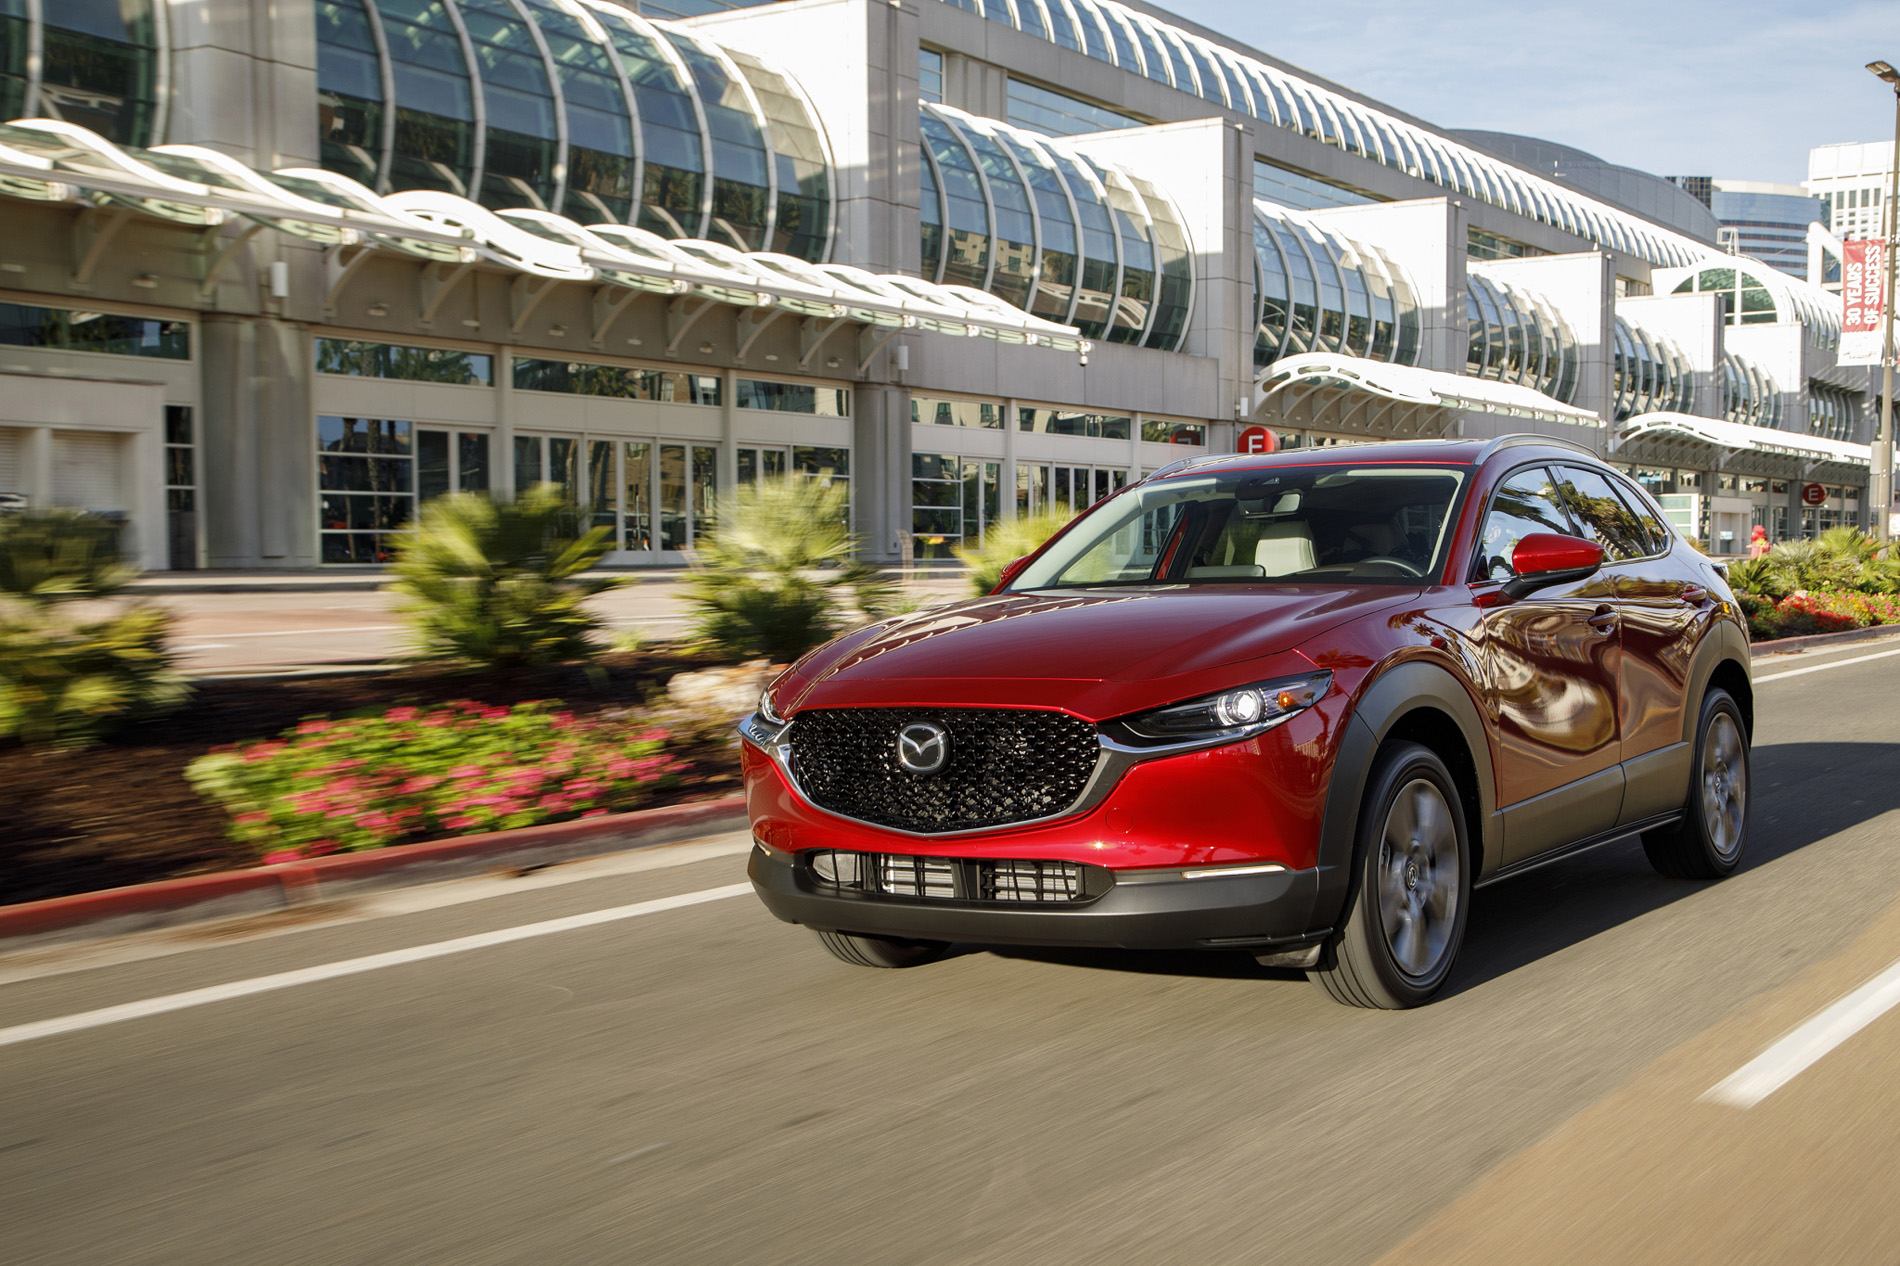 2020_Mazda_CX-30_Car-to-car_1